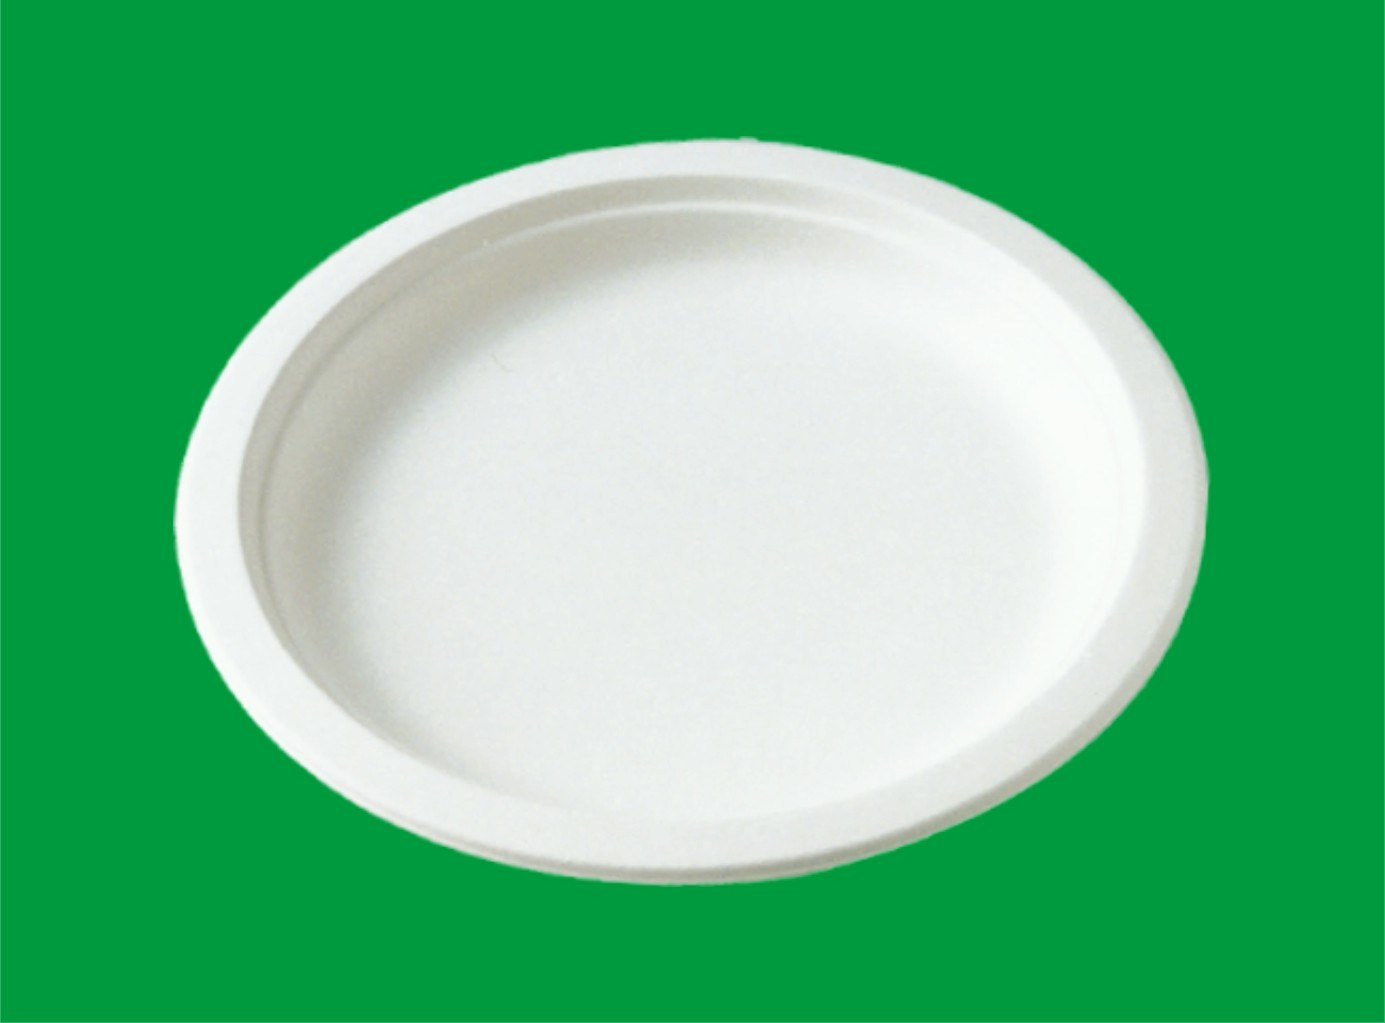 eco friendly paper plates 25 pack 7 eco-friendly palm leaf disposable salad dessert plates  mother  nature, those cheap-looking eco-friendly paper plates are not your only option.